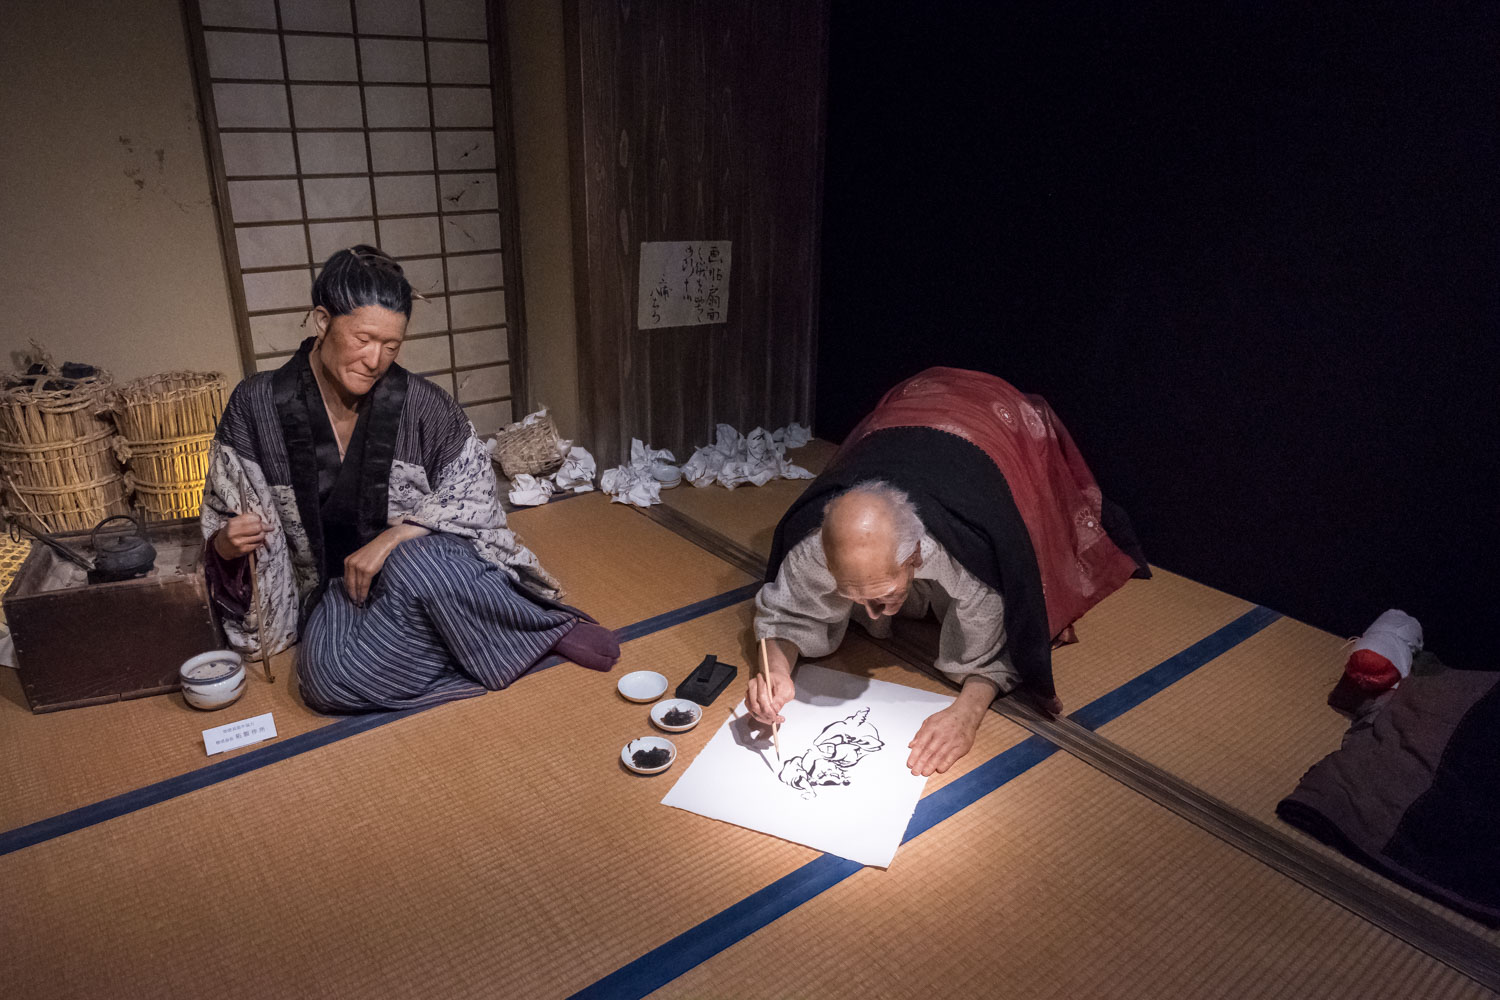 Hokusai and this daughter at work in their studio